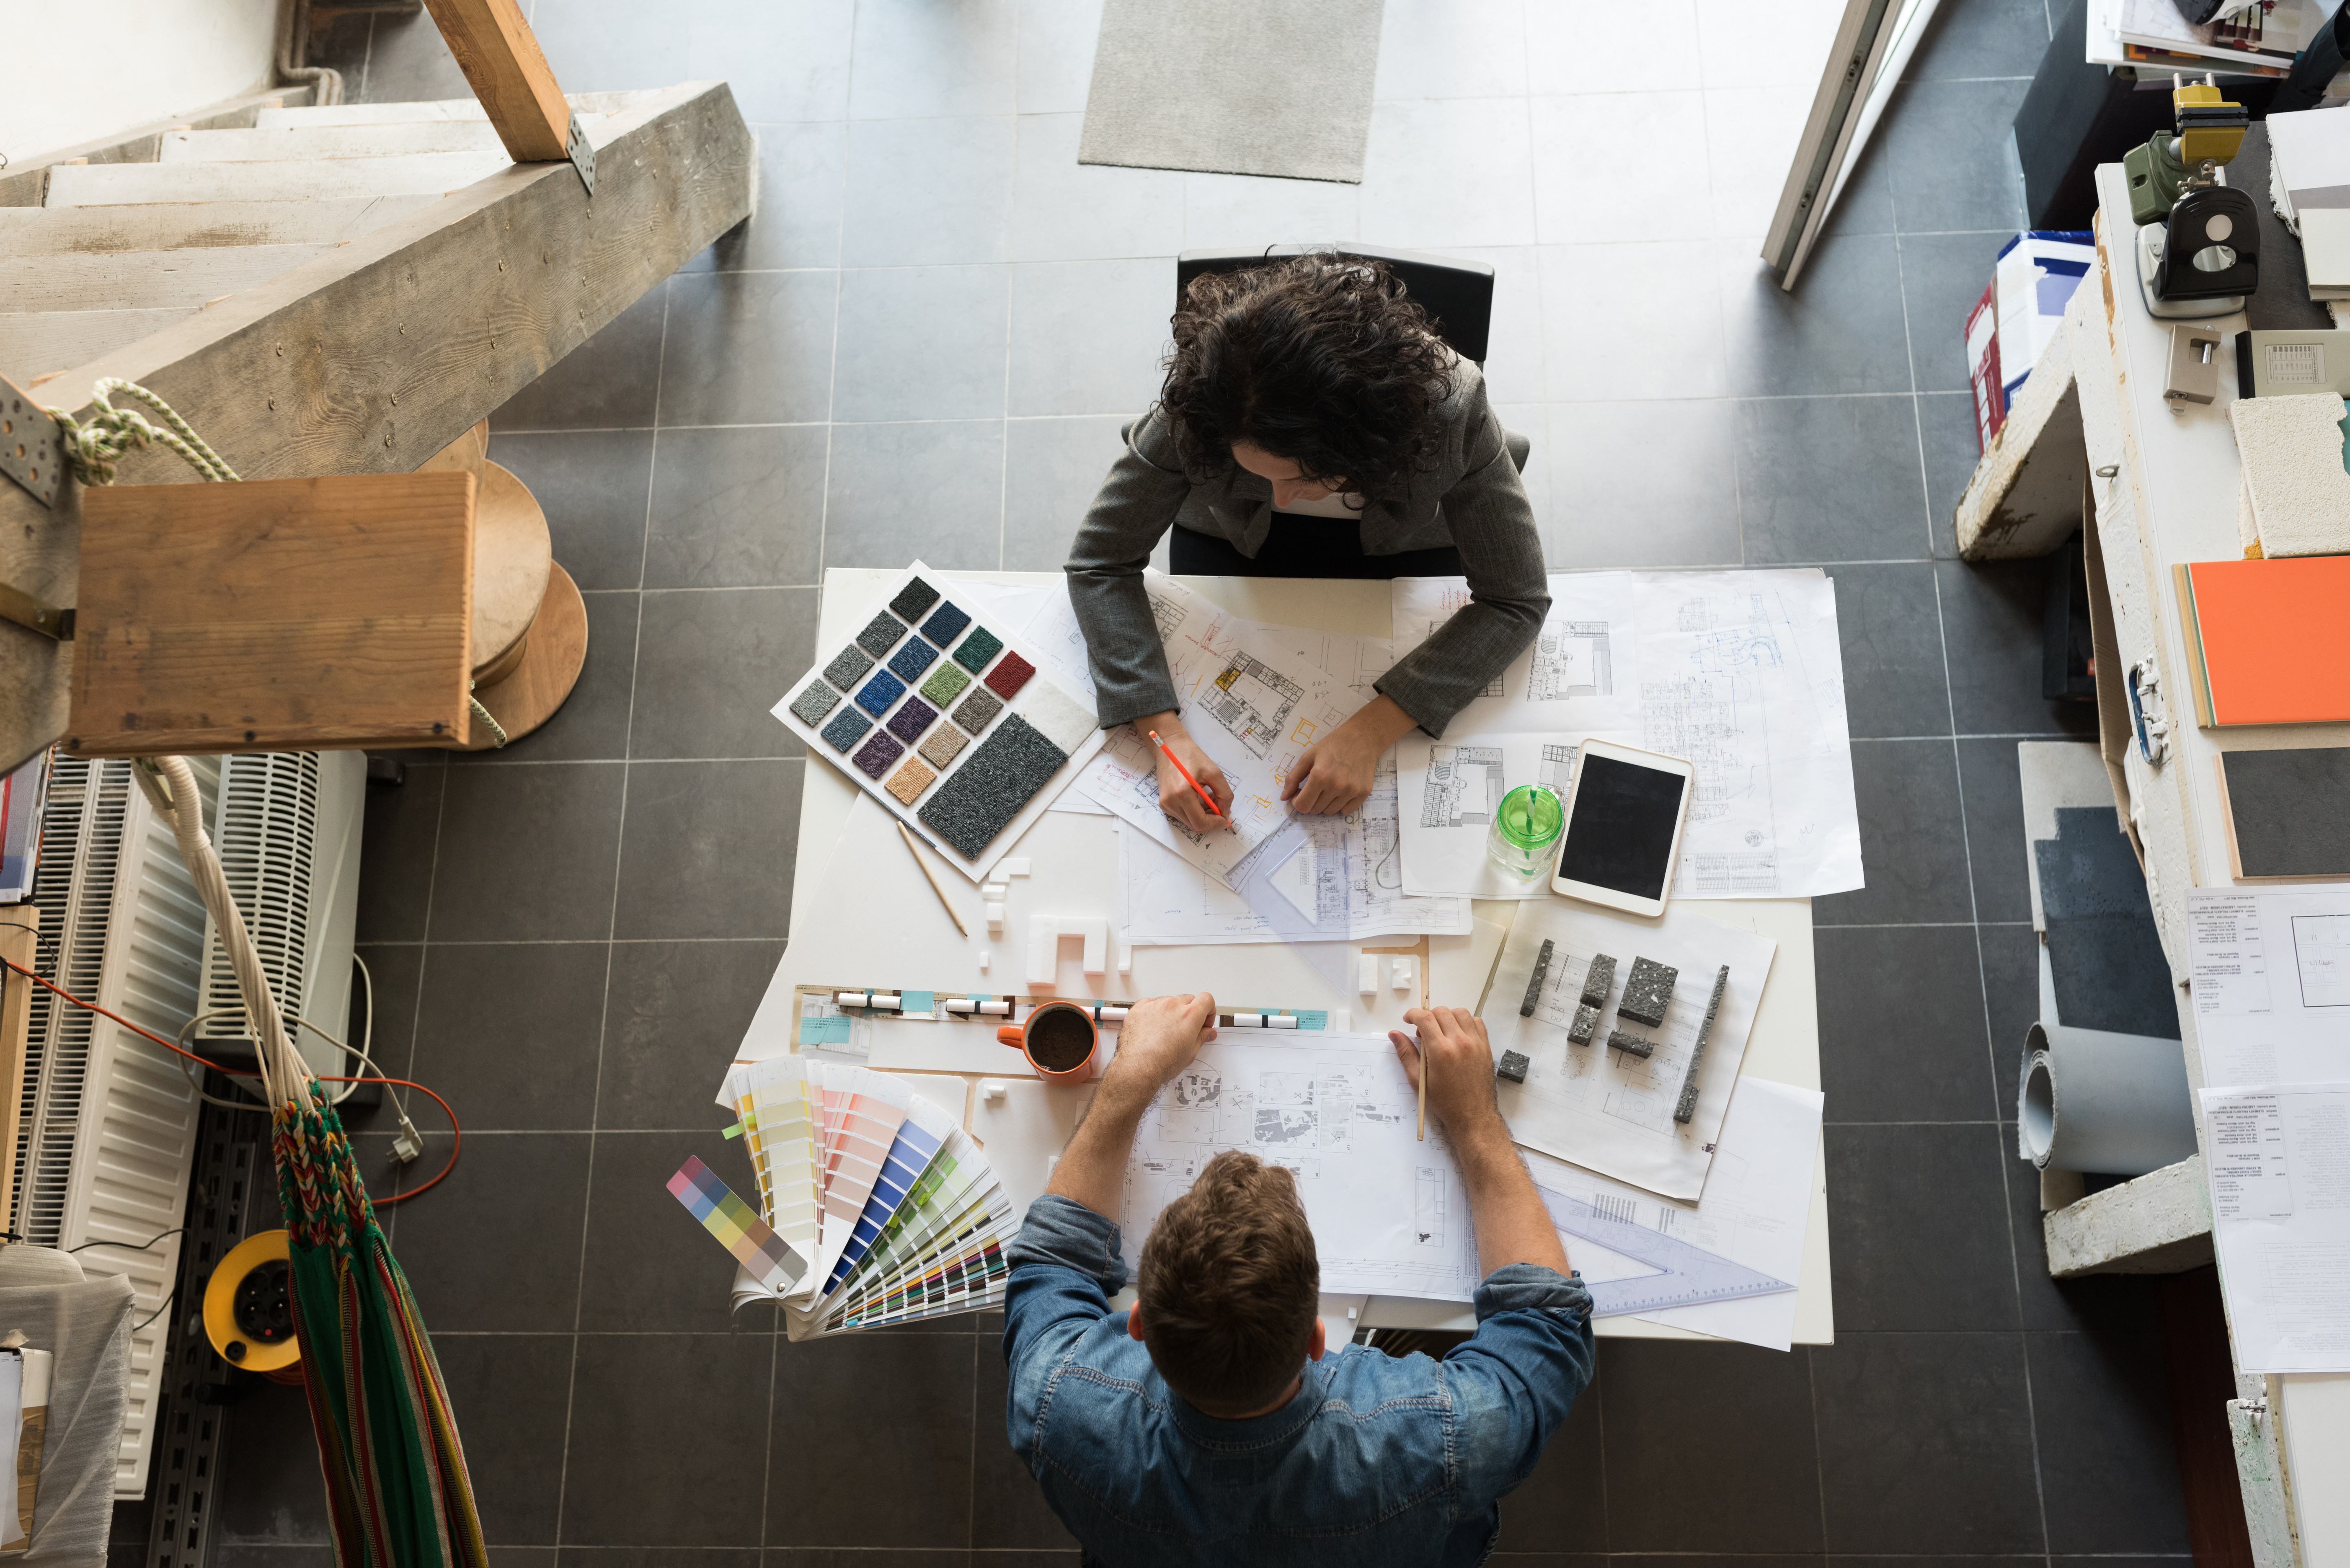 Two people design working together